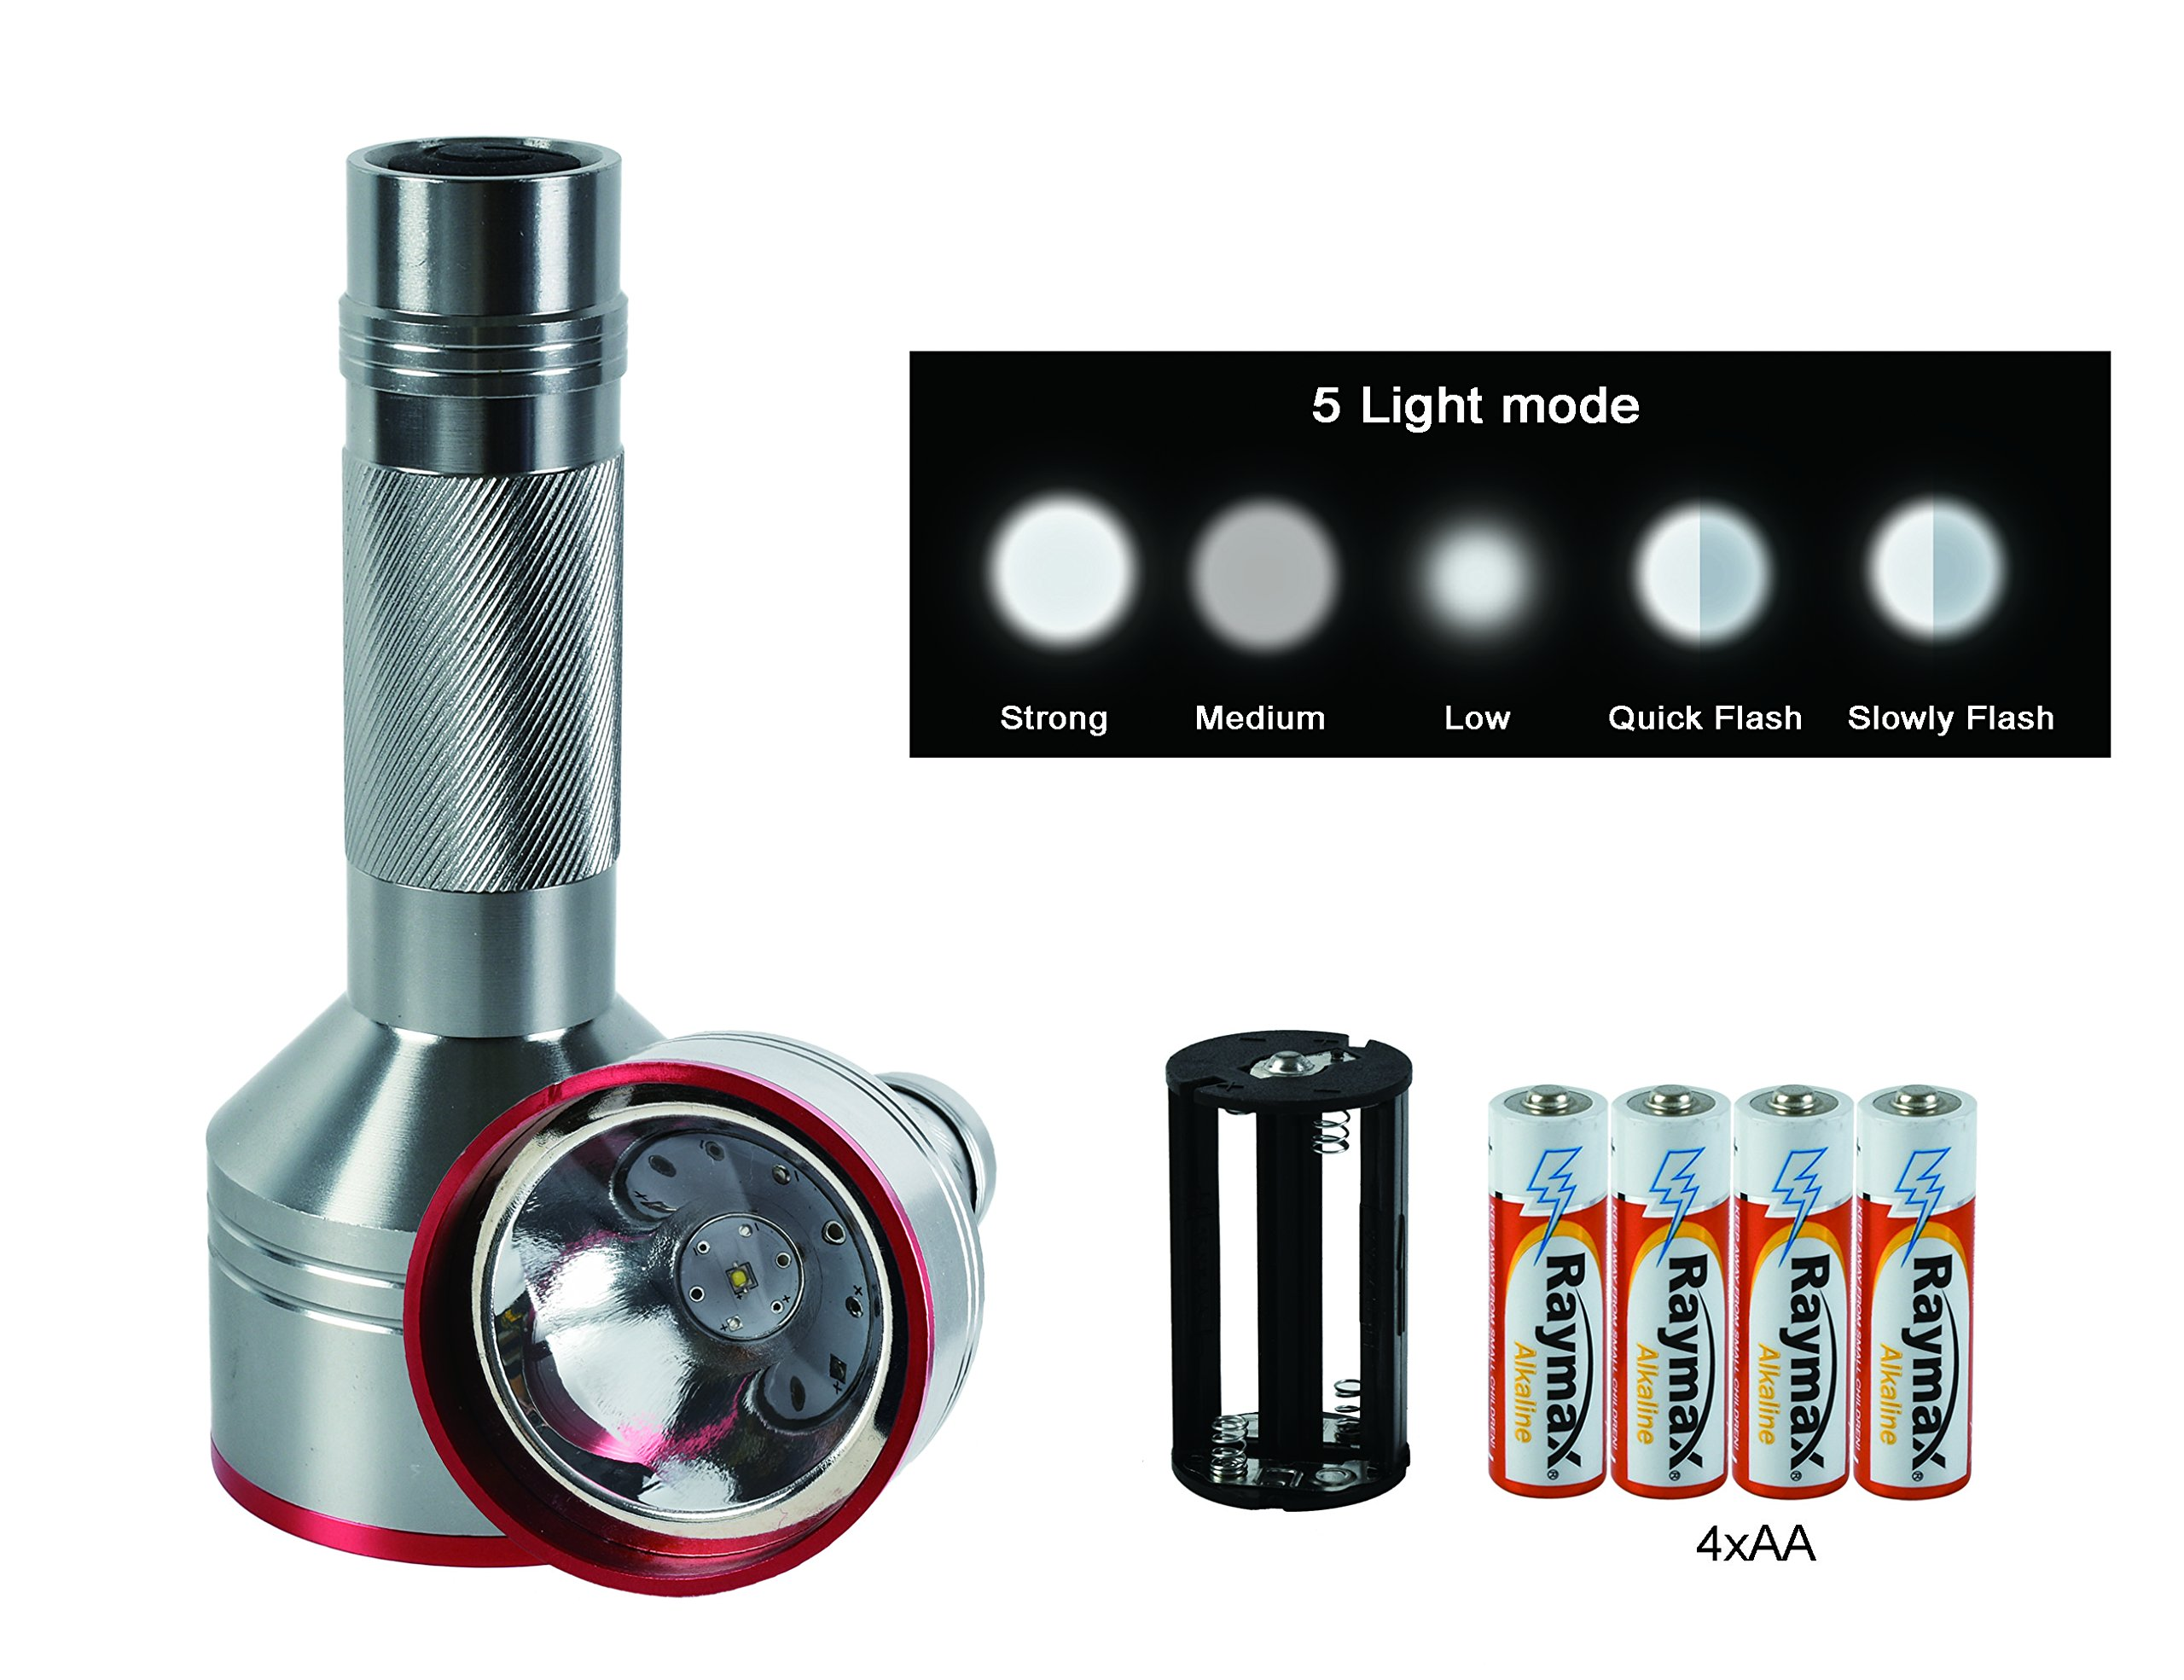 Mini LED Tactical Flashlight Ultra-Bright 3 Modes with 1200 Lumens,Water Resistant and Batteries Included for Camping Security and Emergency Use